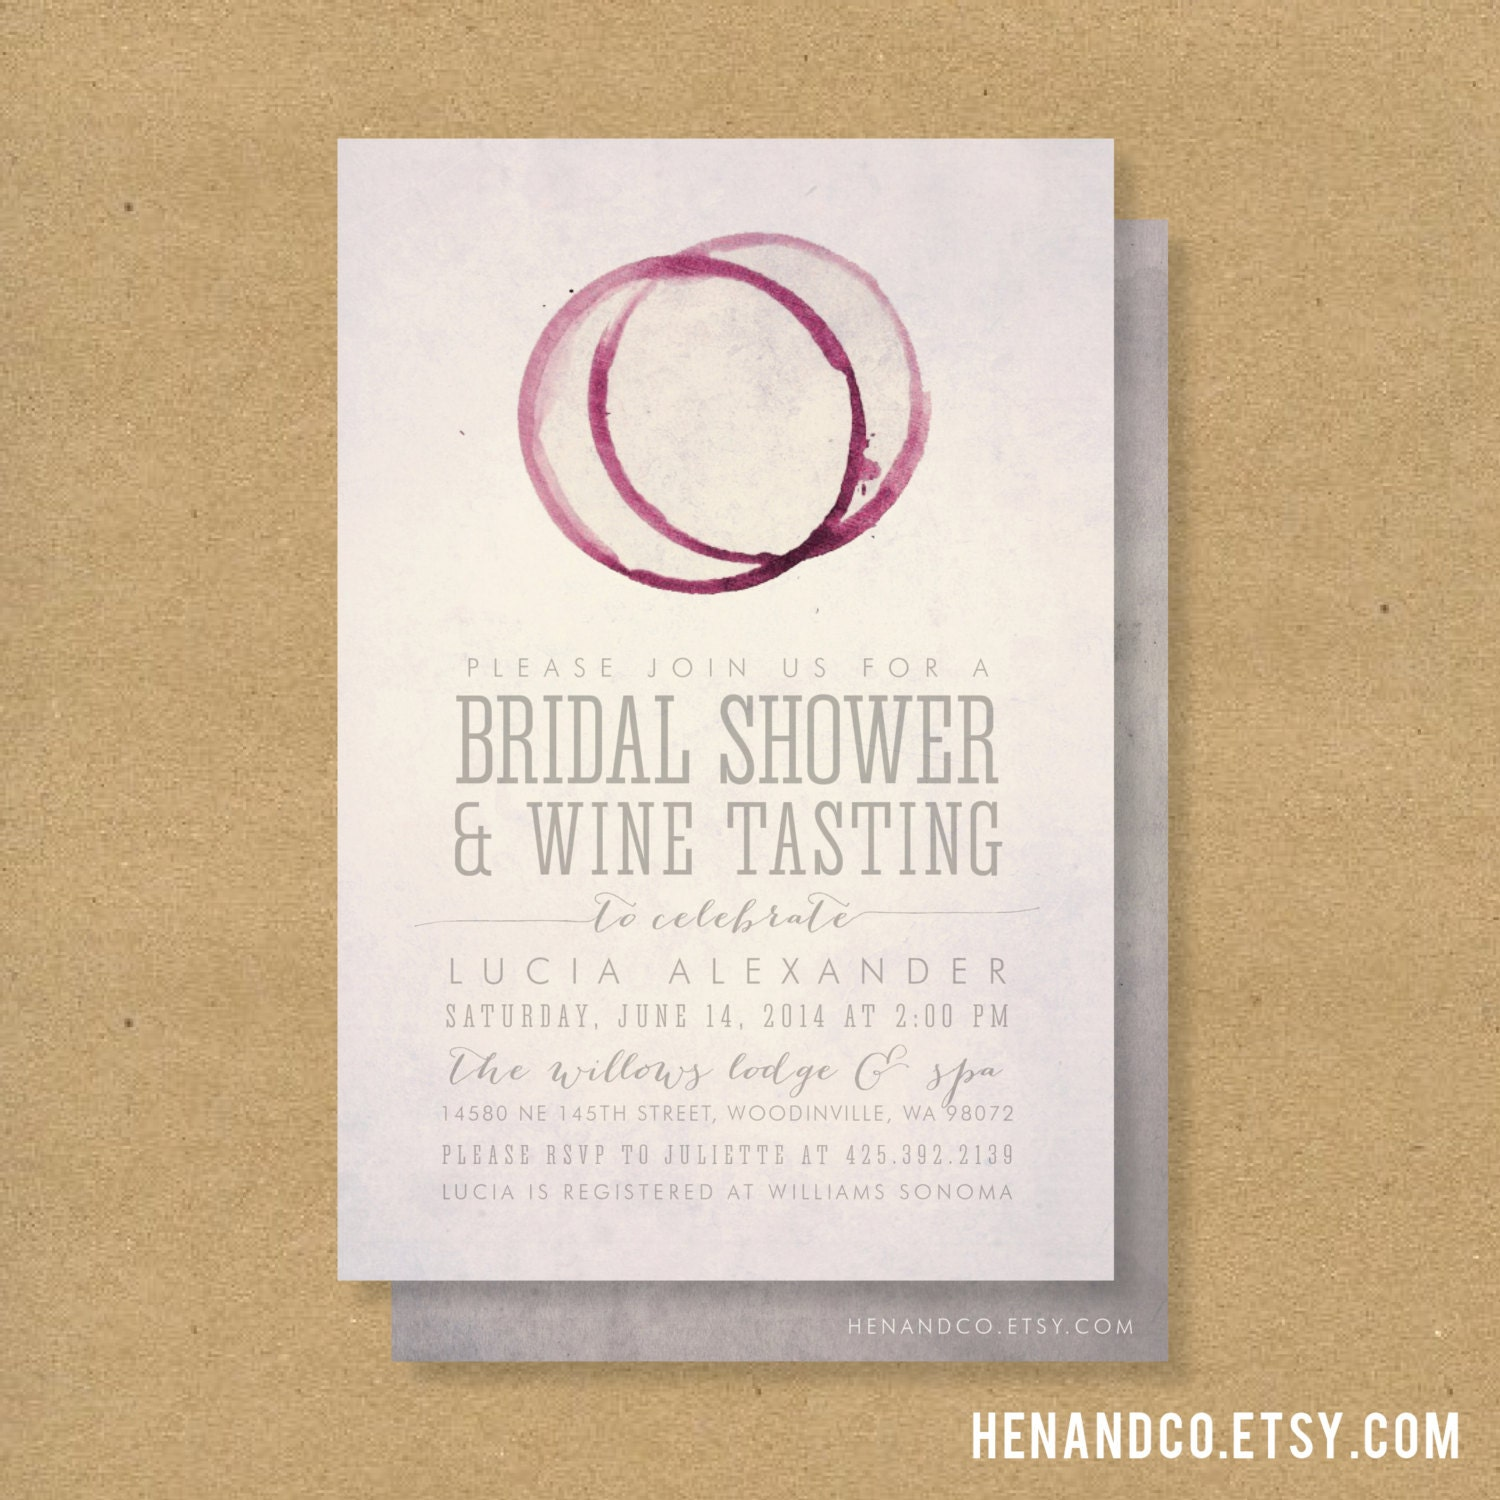 Winery Wedding Invitations is beautiful invitation sample